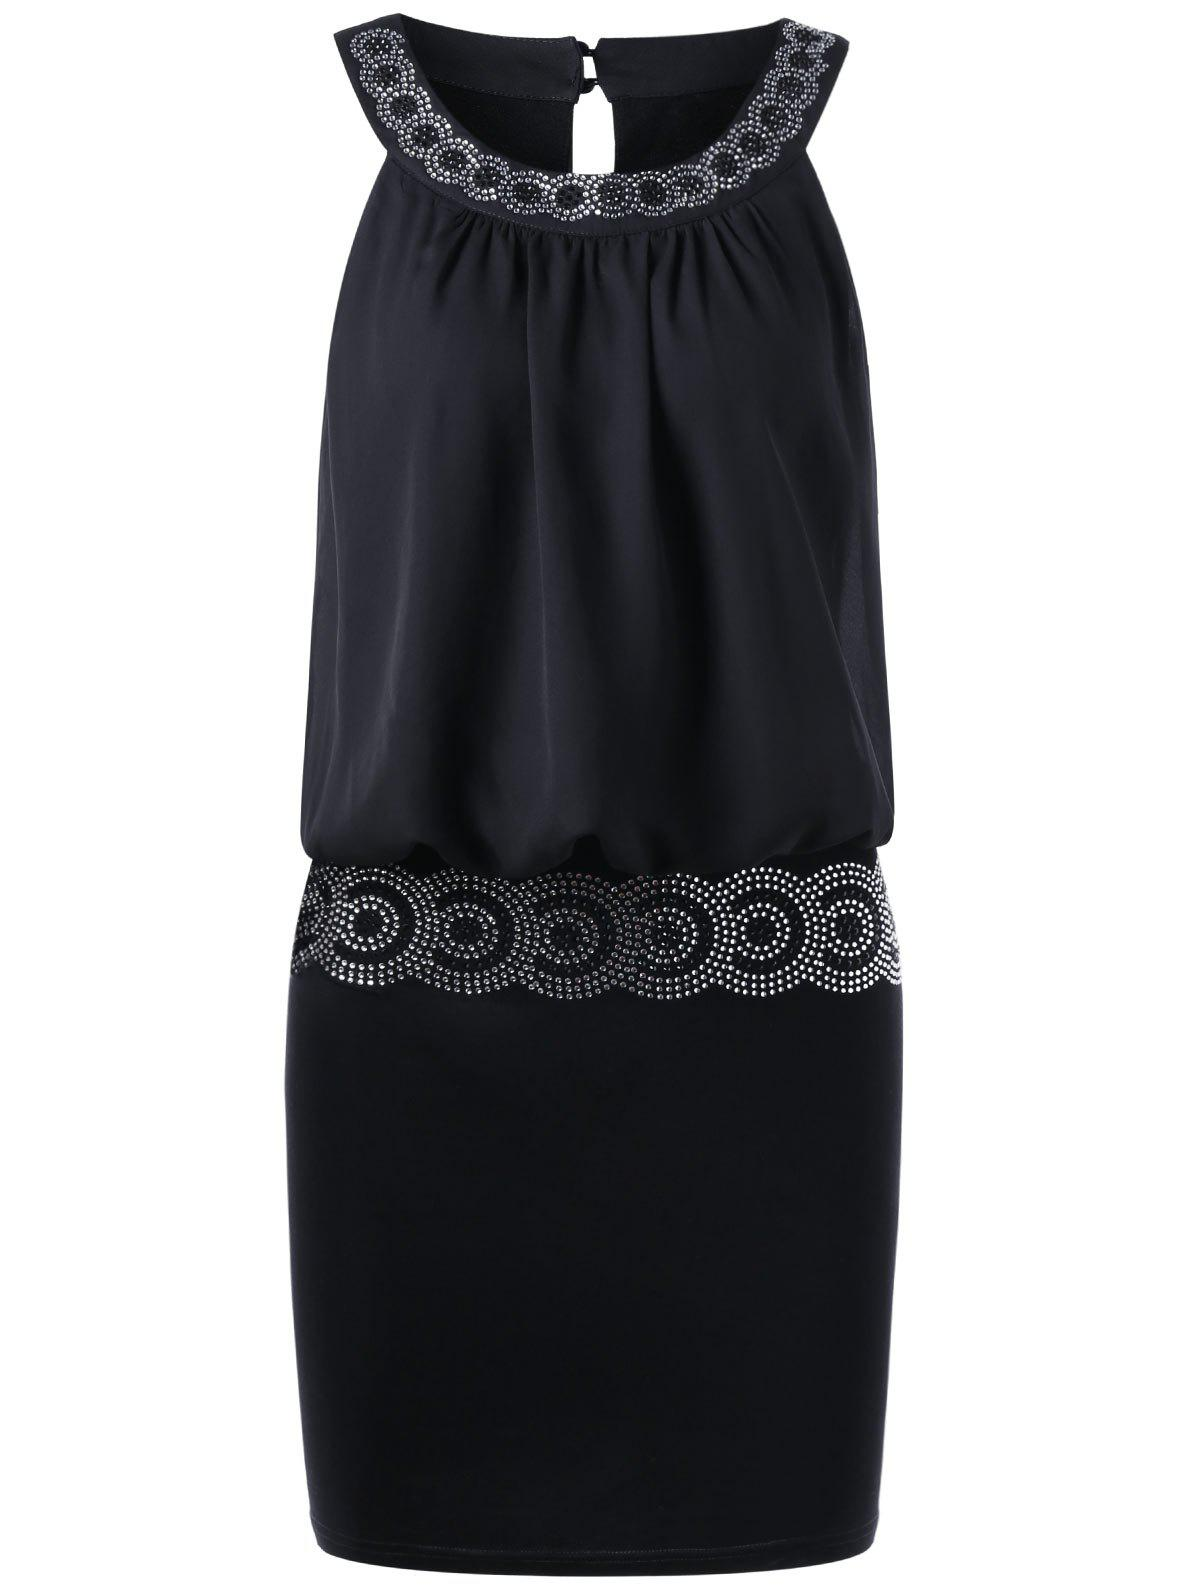 Online Sequined Embellished Club Mini Blouson Dress